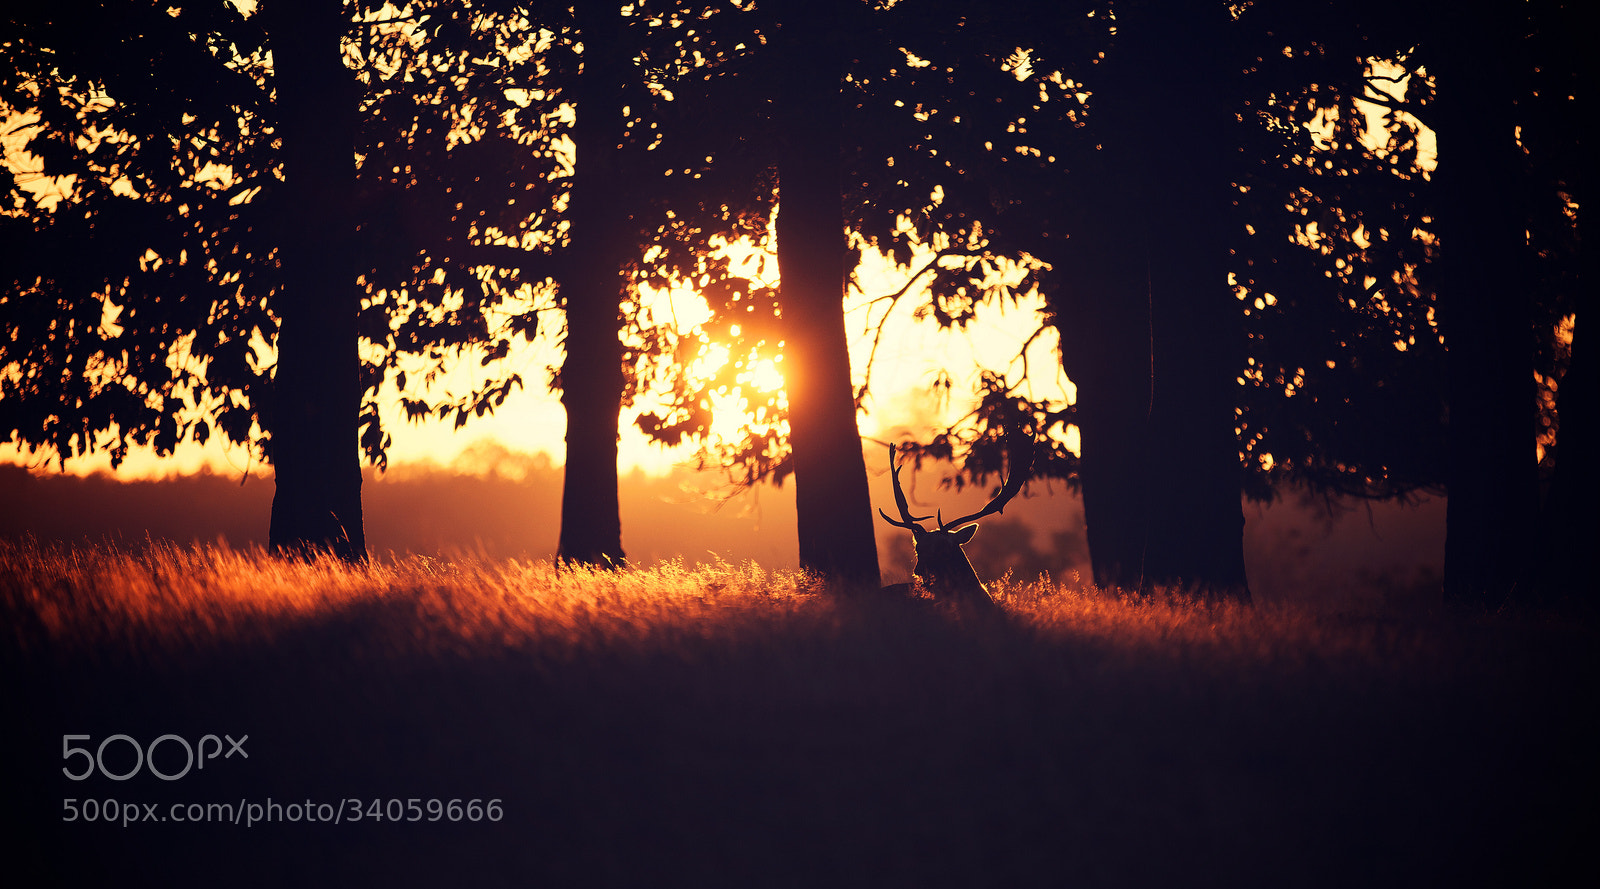 Photograph solitary by Mark Bridger on 500px